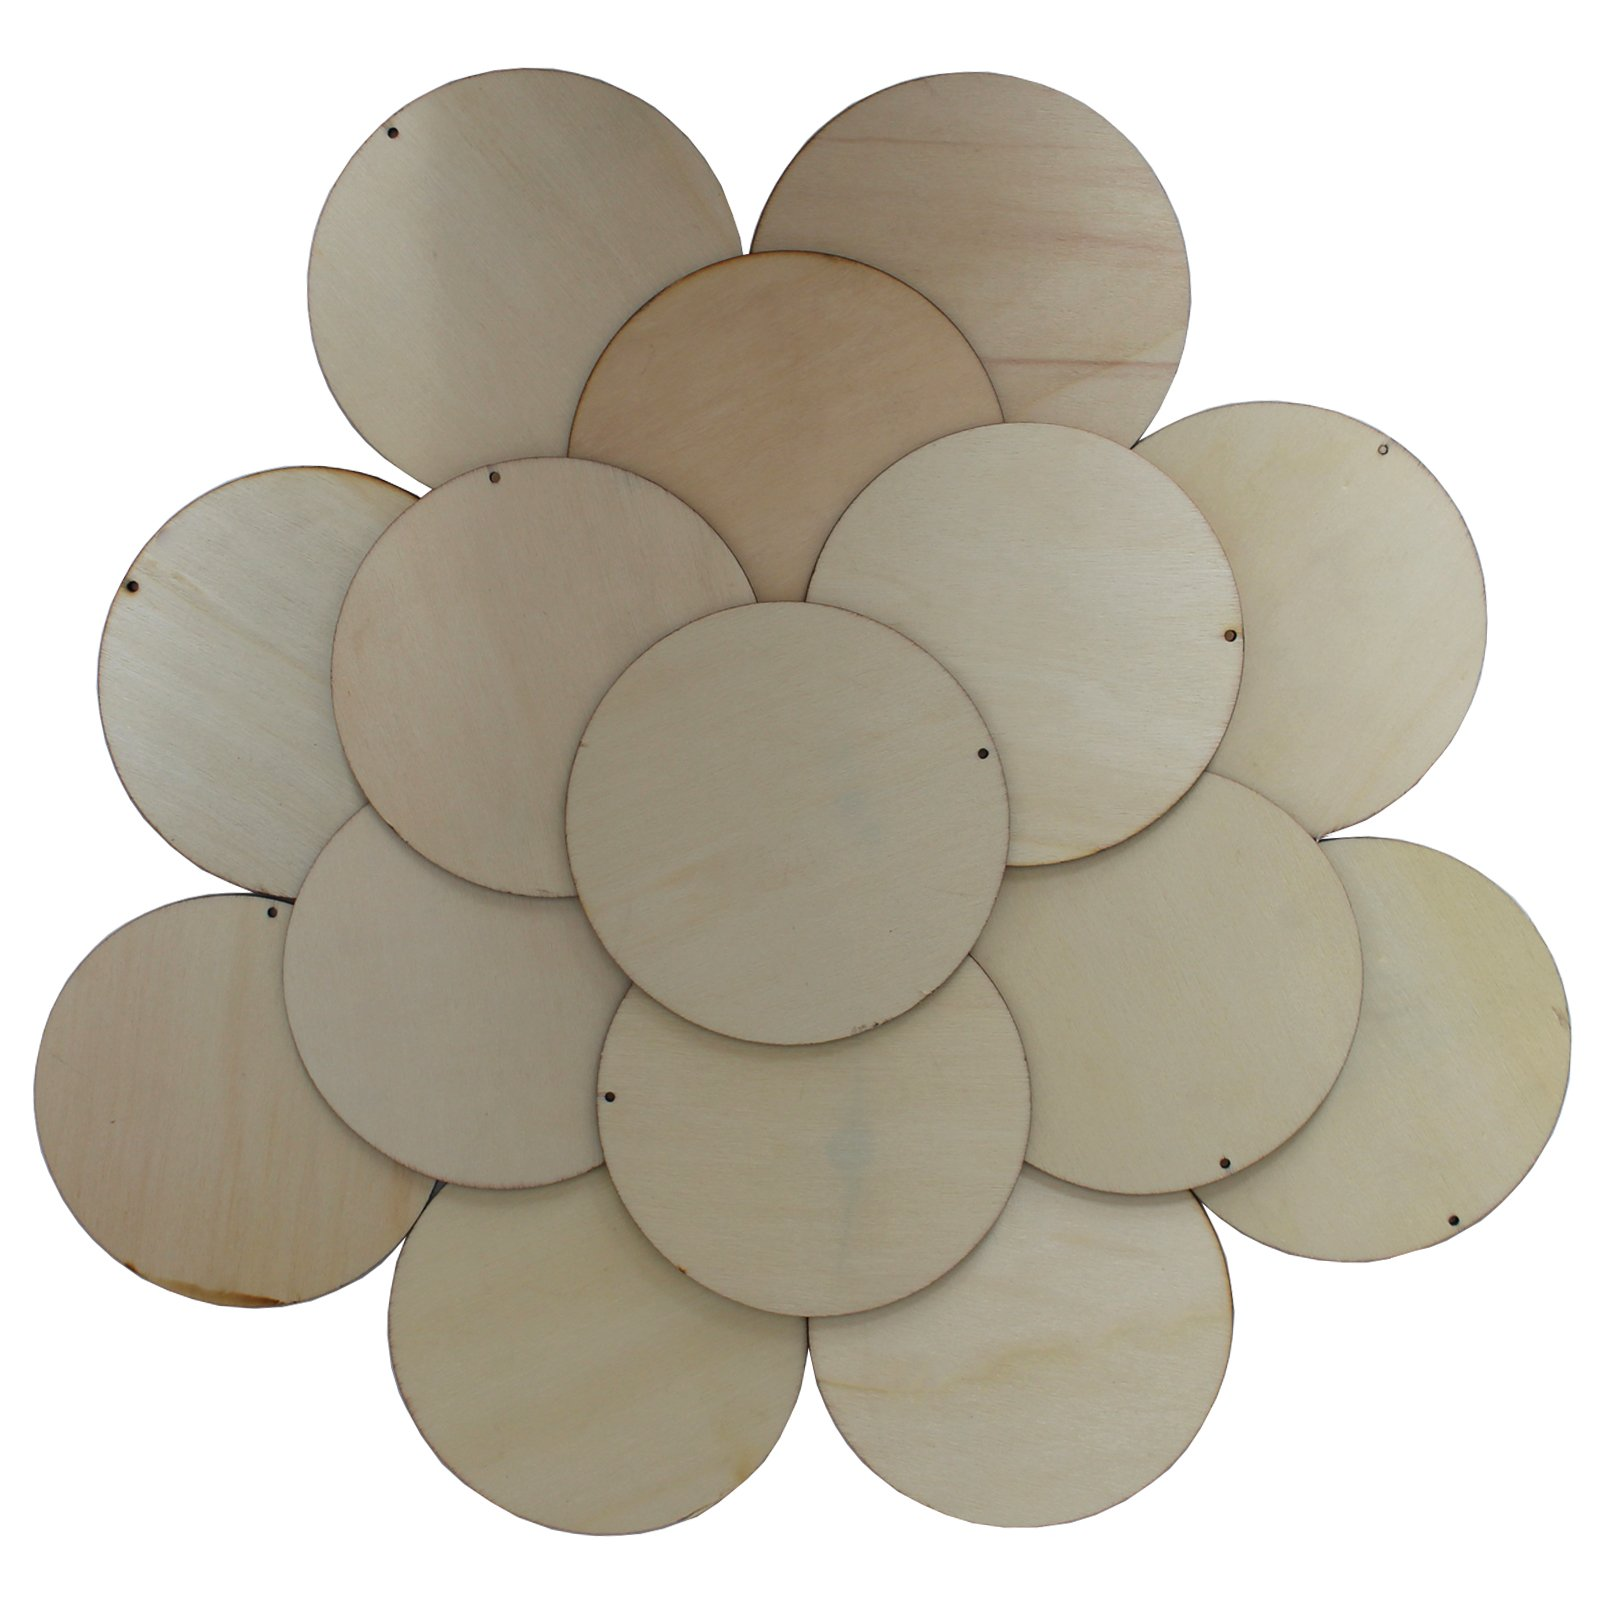 50 Pieces Natural Wooden Circles – 10 cm Unfinished Wooden Slices with Holes – Craft Wood Kit & Wooden Tags – Round Disc Wood Cutouts for Hanging Decorations, Painting, Birthday Party & DIY Ornaments